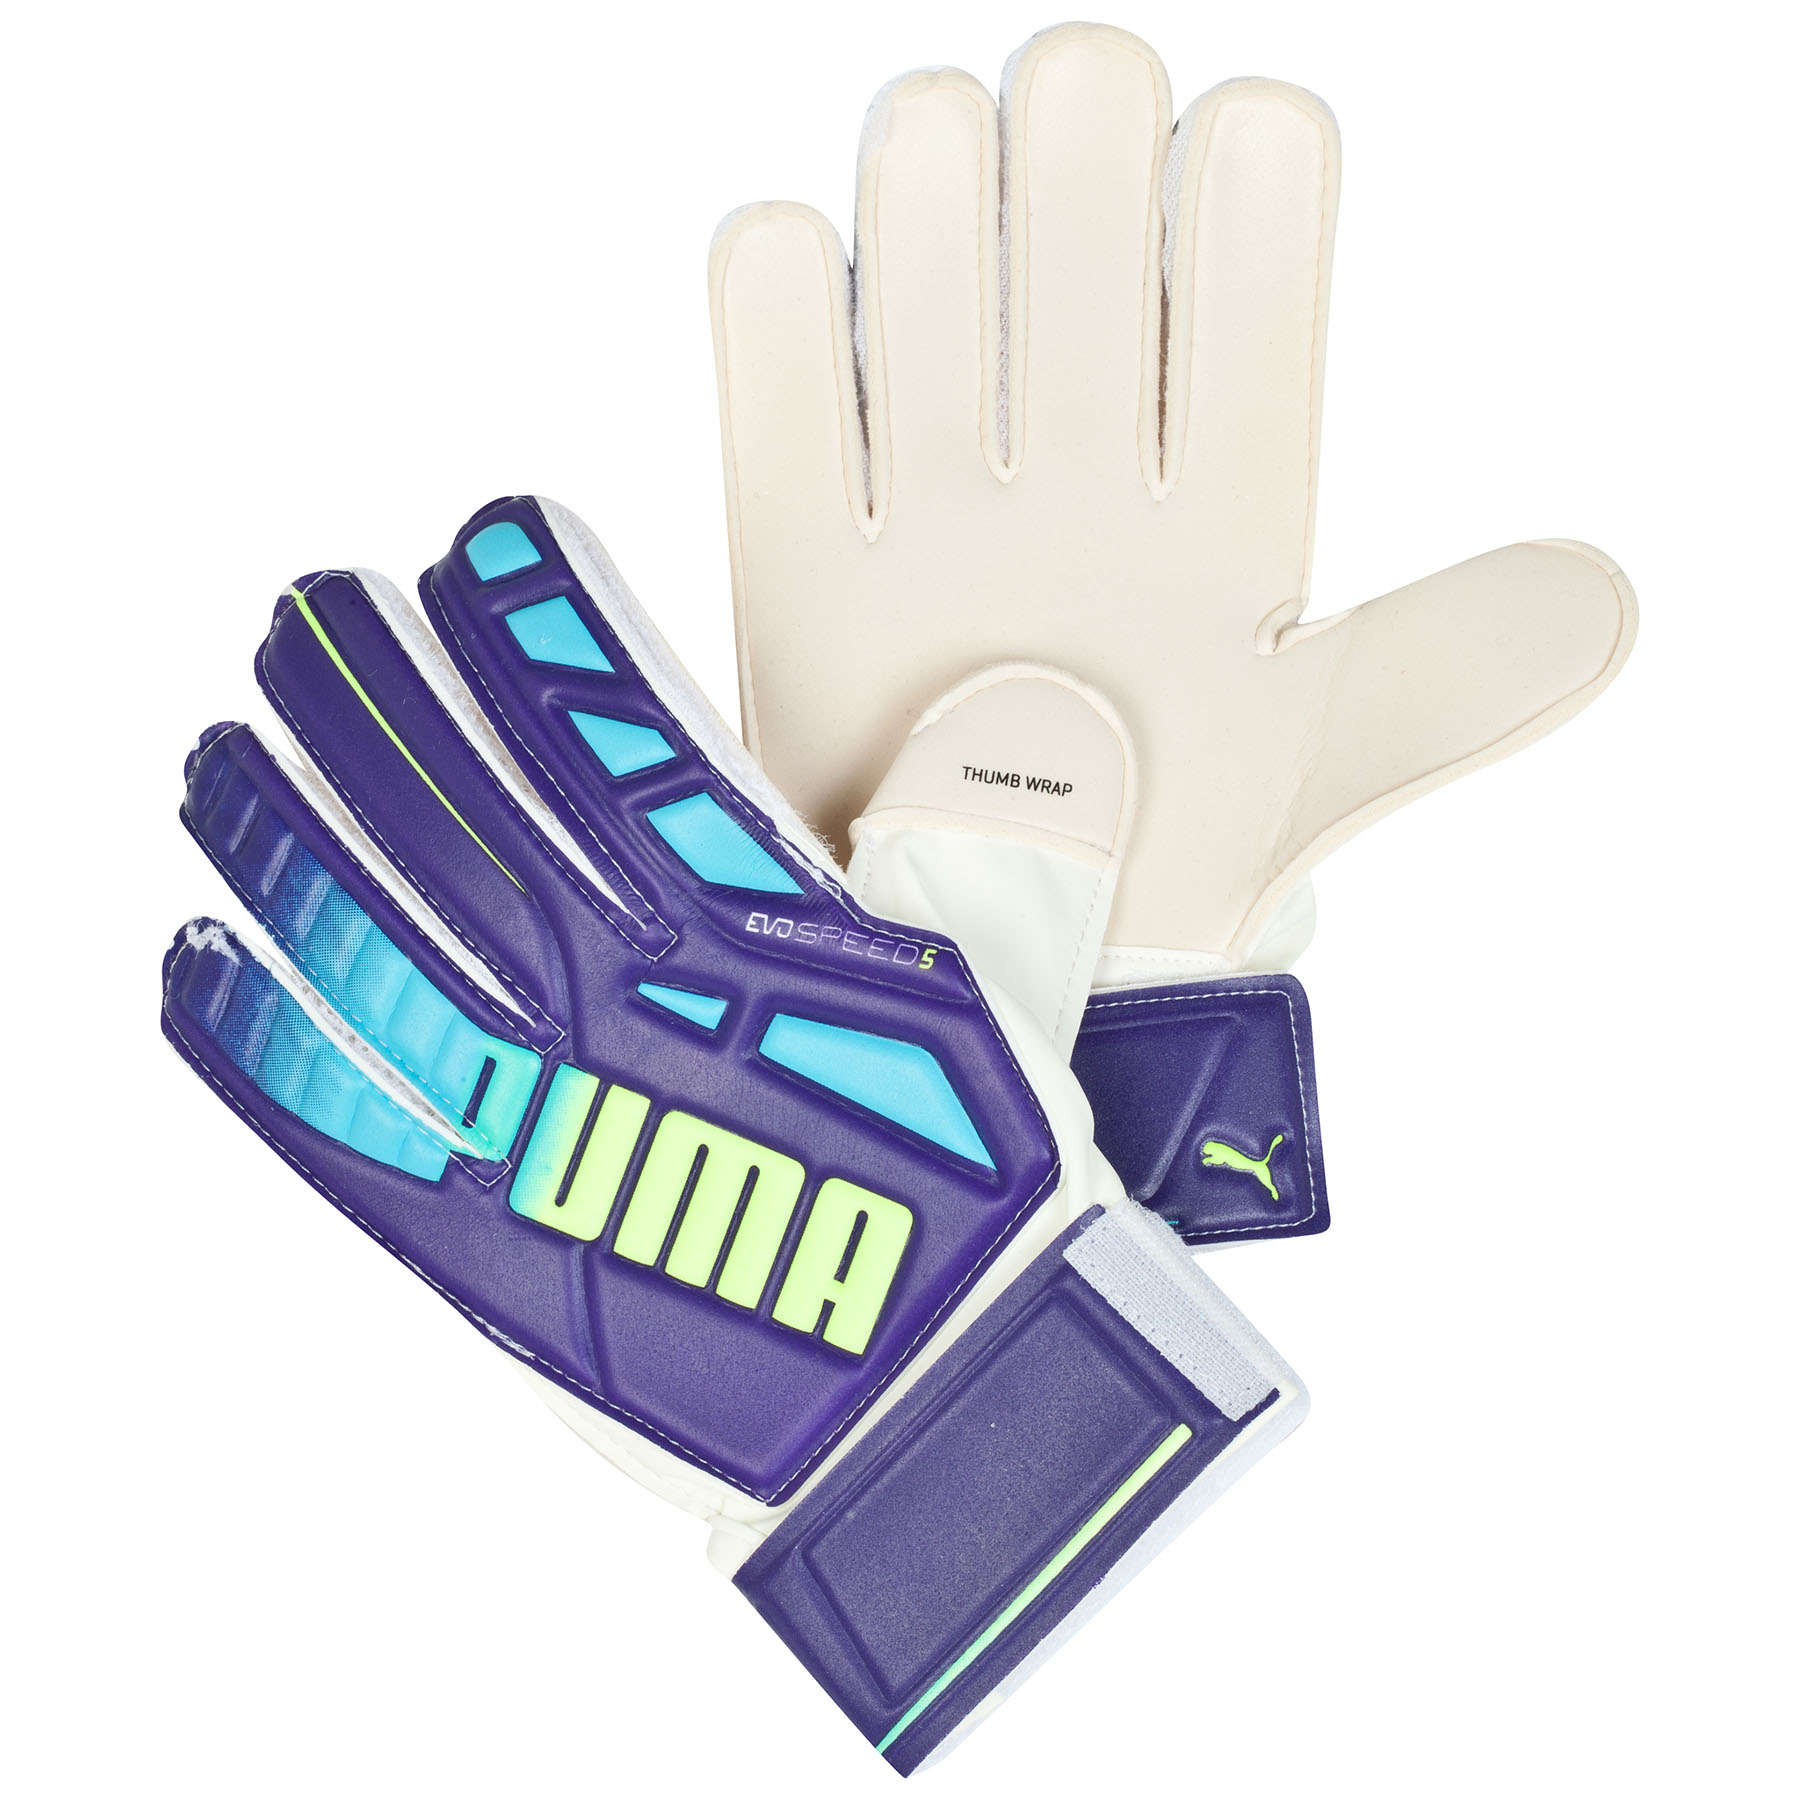 Puma evoSPEED 5.3 Goalkeeper Glove - Kids Purple